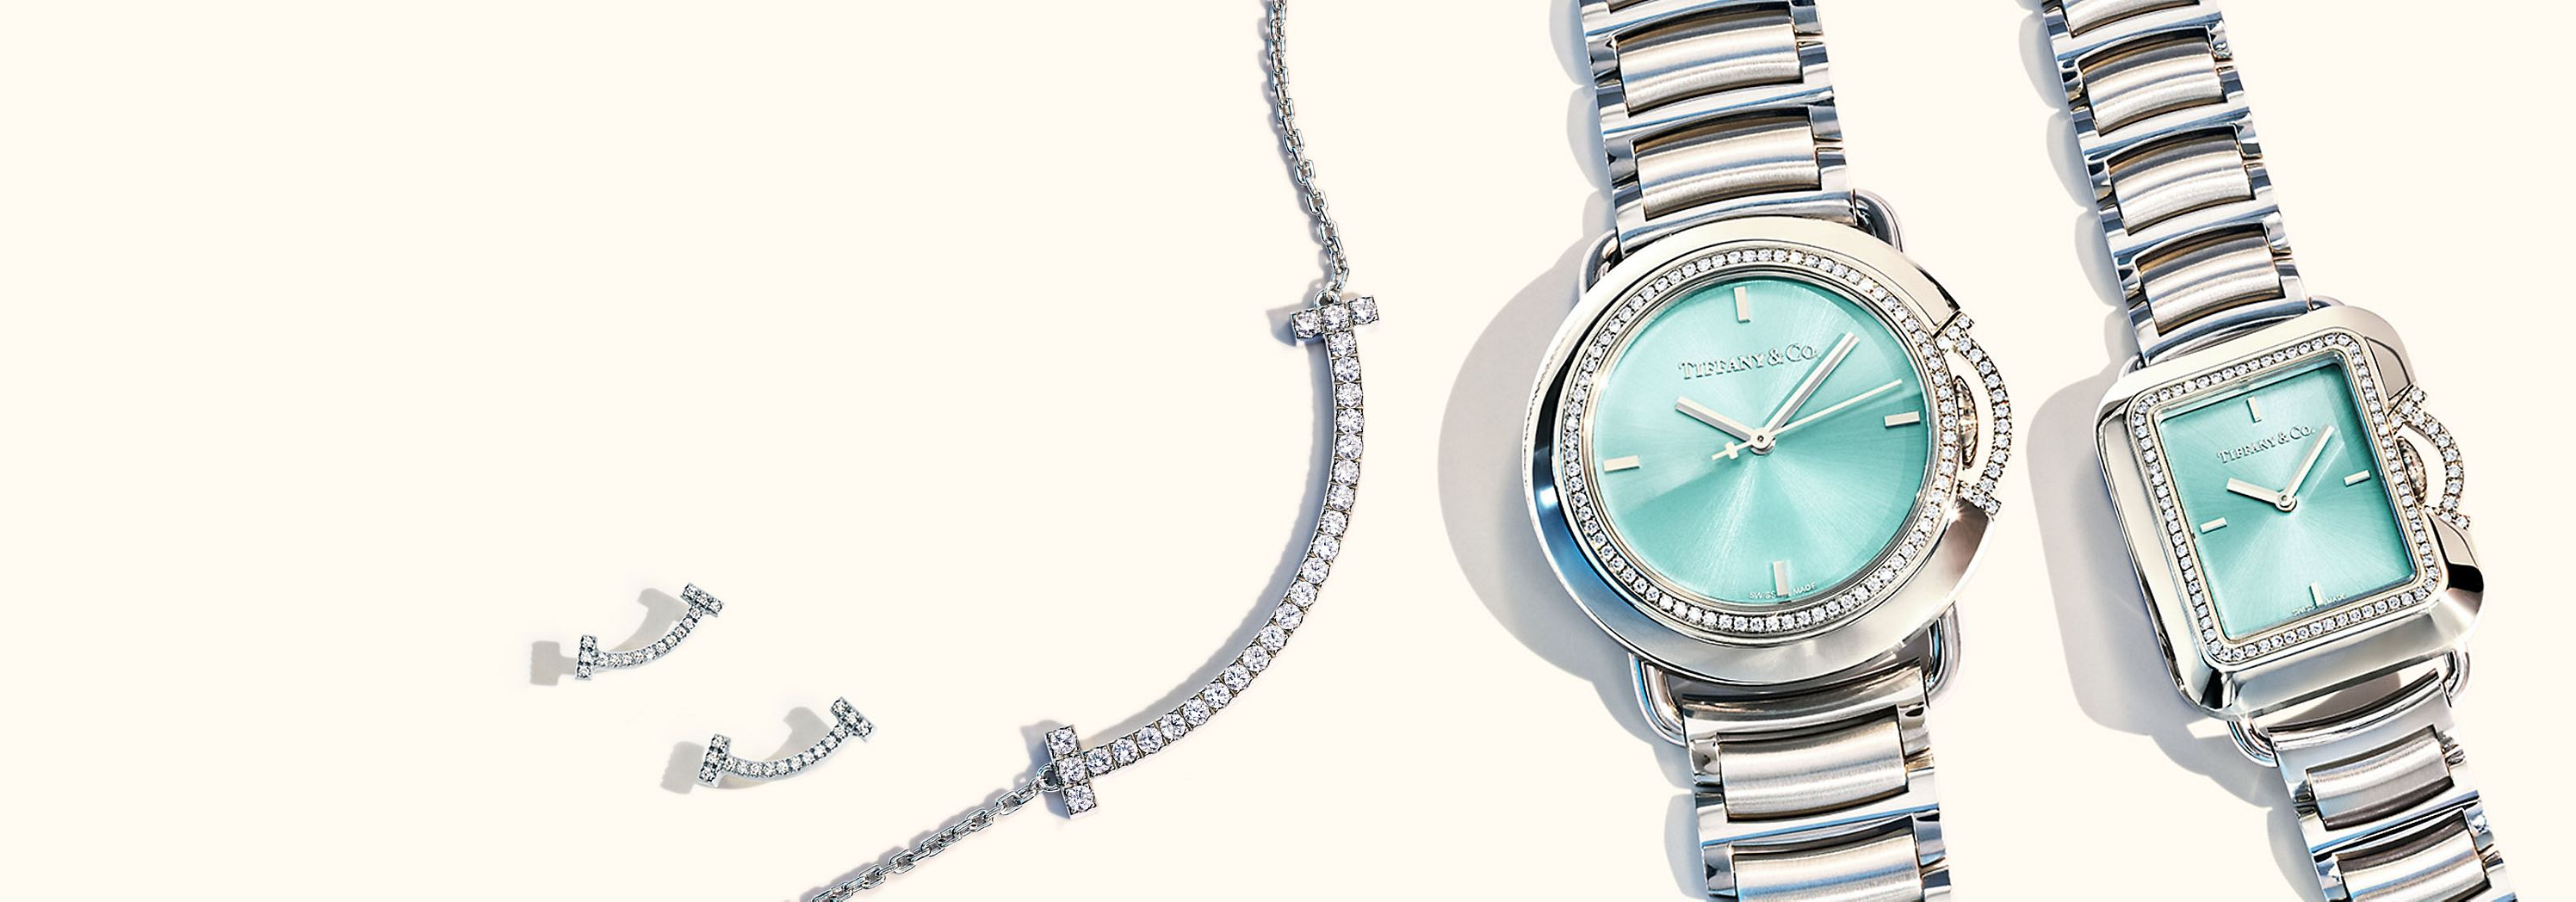 Orologi Tiffany T di Tiffany & Co.